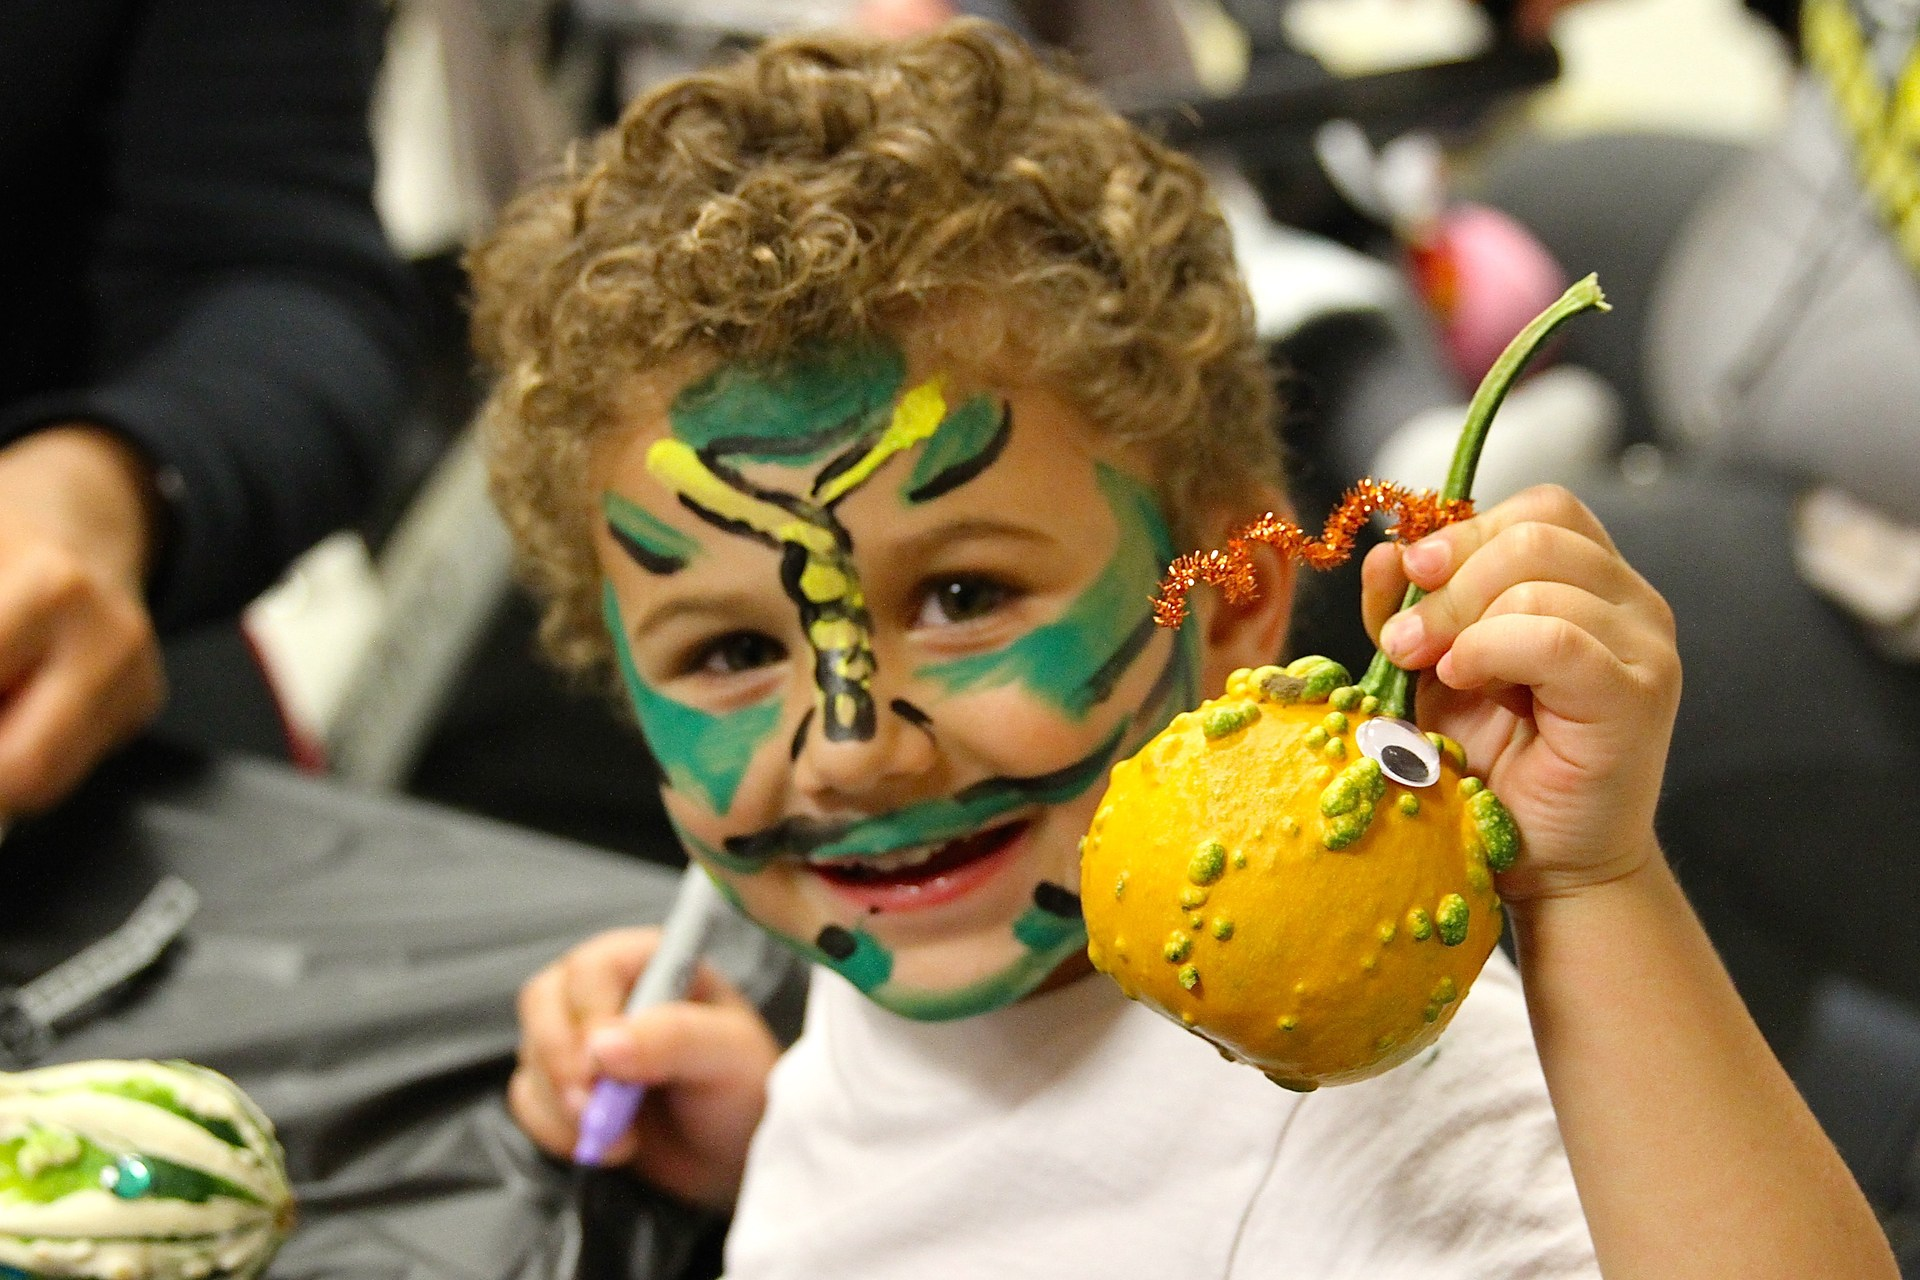 child with face paint holding up decorated gourd